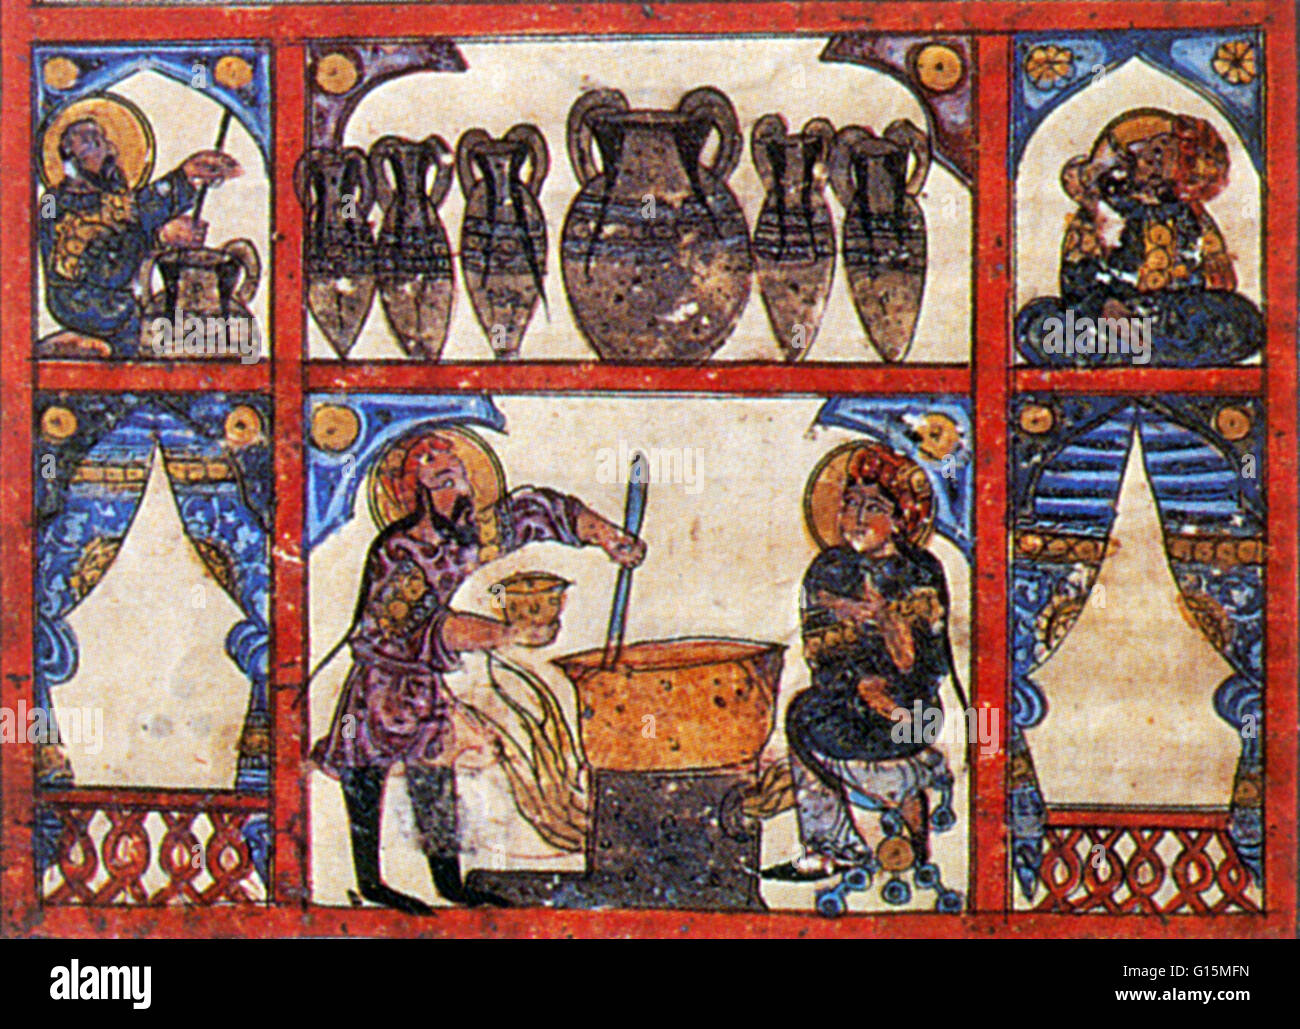 Arabic artwork entitled 'The Preparation of Medicine from Honey' from a 1224 Arabic translation of the manuscript - Stock Image